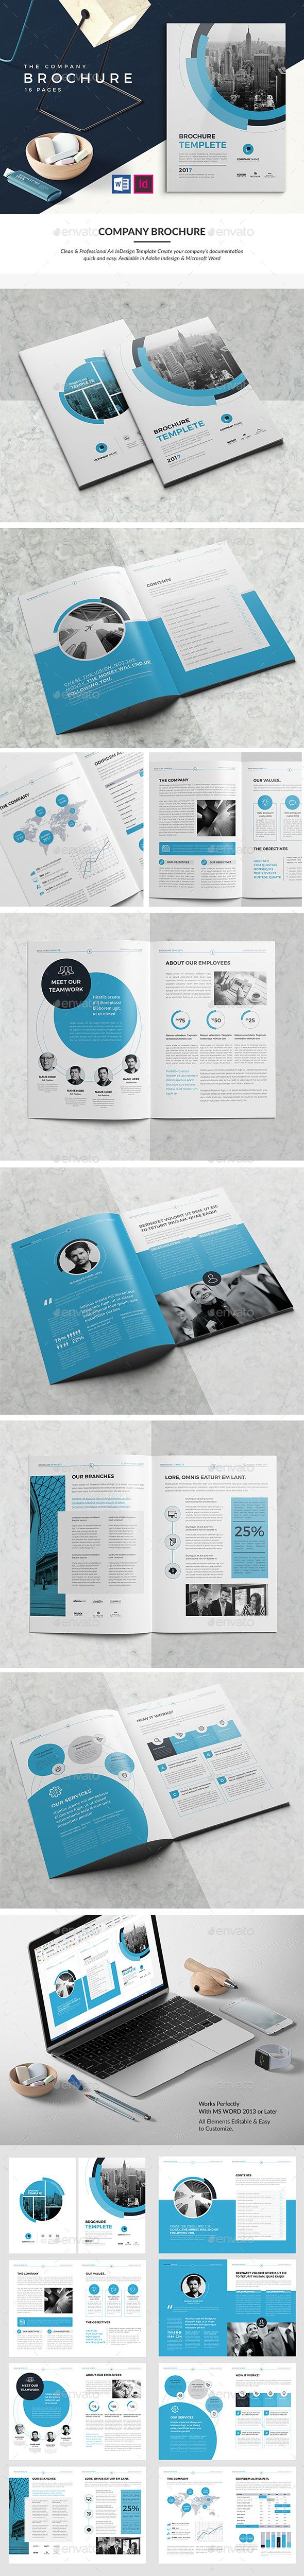 CO Brochure 16 Pages — InDesign INDD #indesign #brochure • Download ...